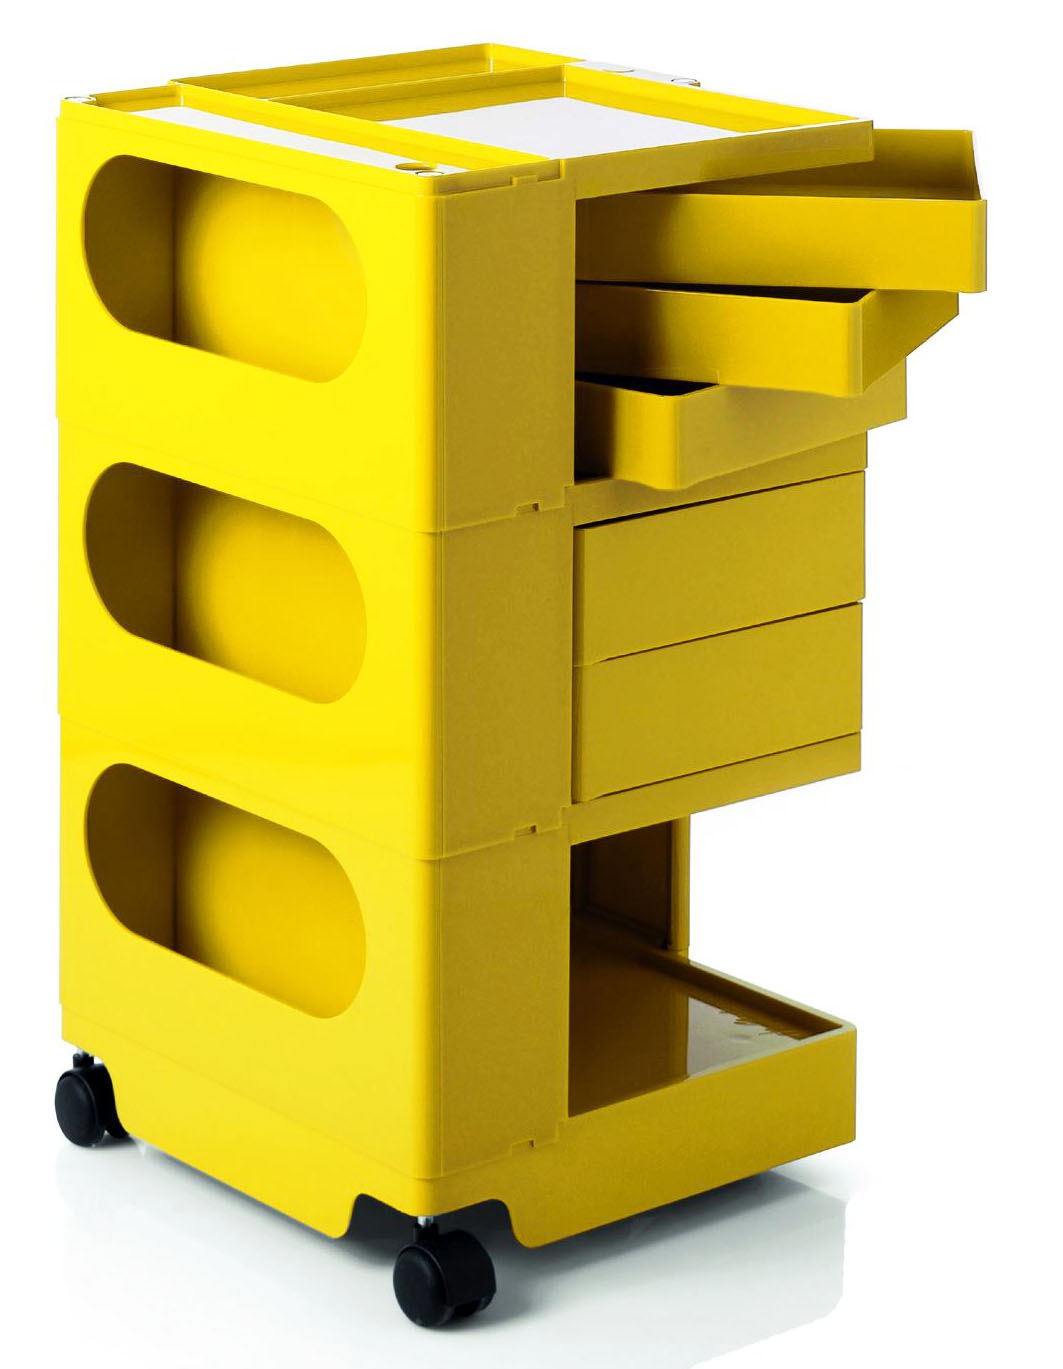 joe colombo boby trolley modern design by